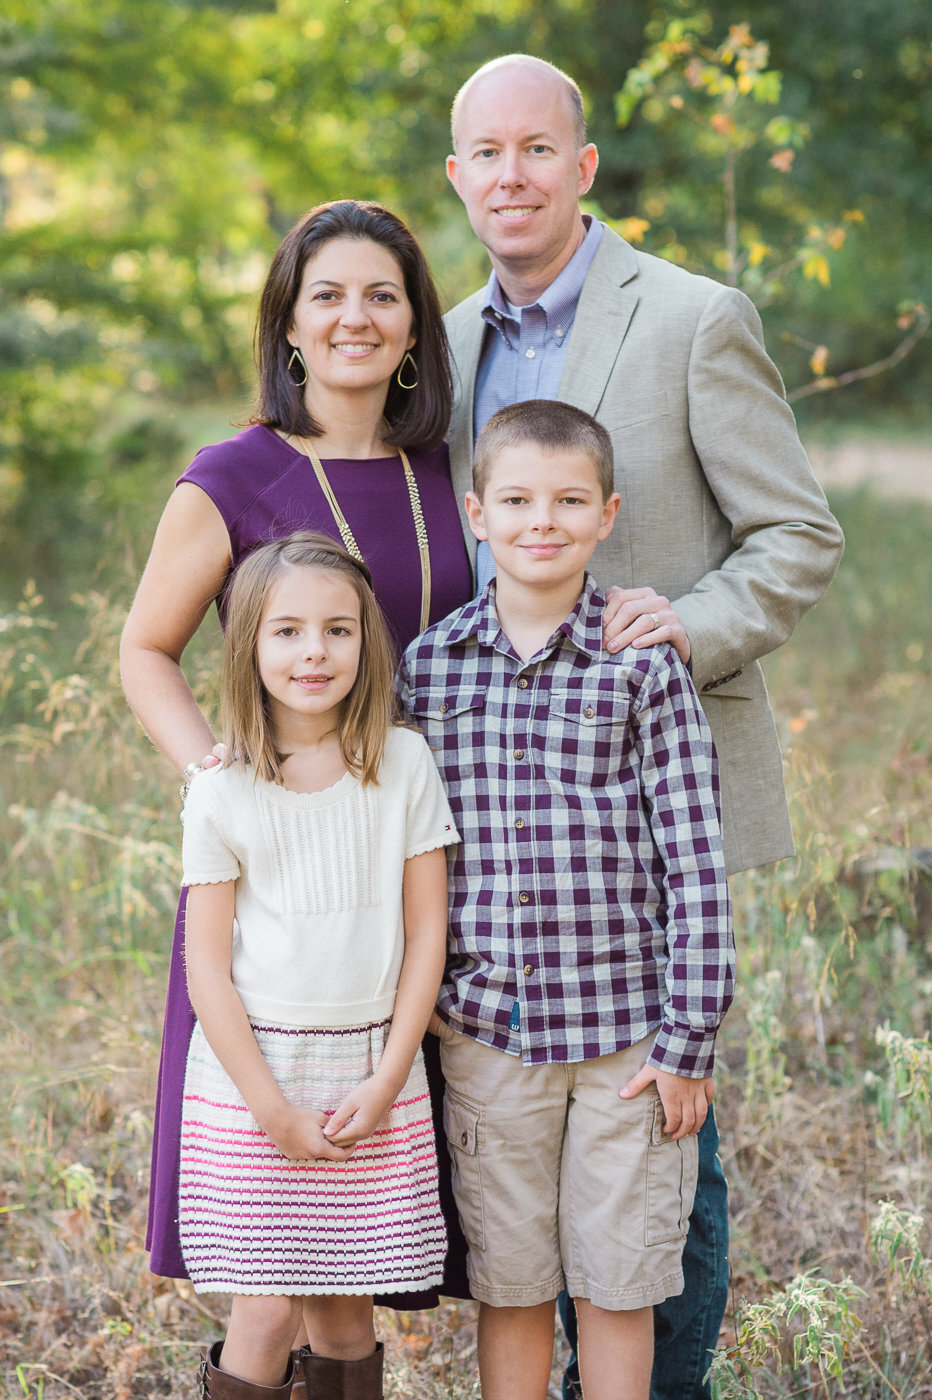 houston-family-portrait-photographer-19